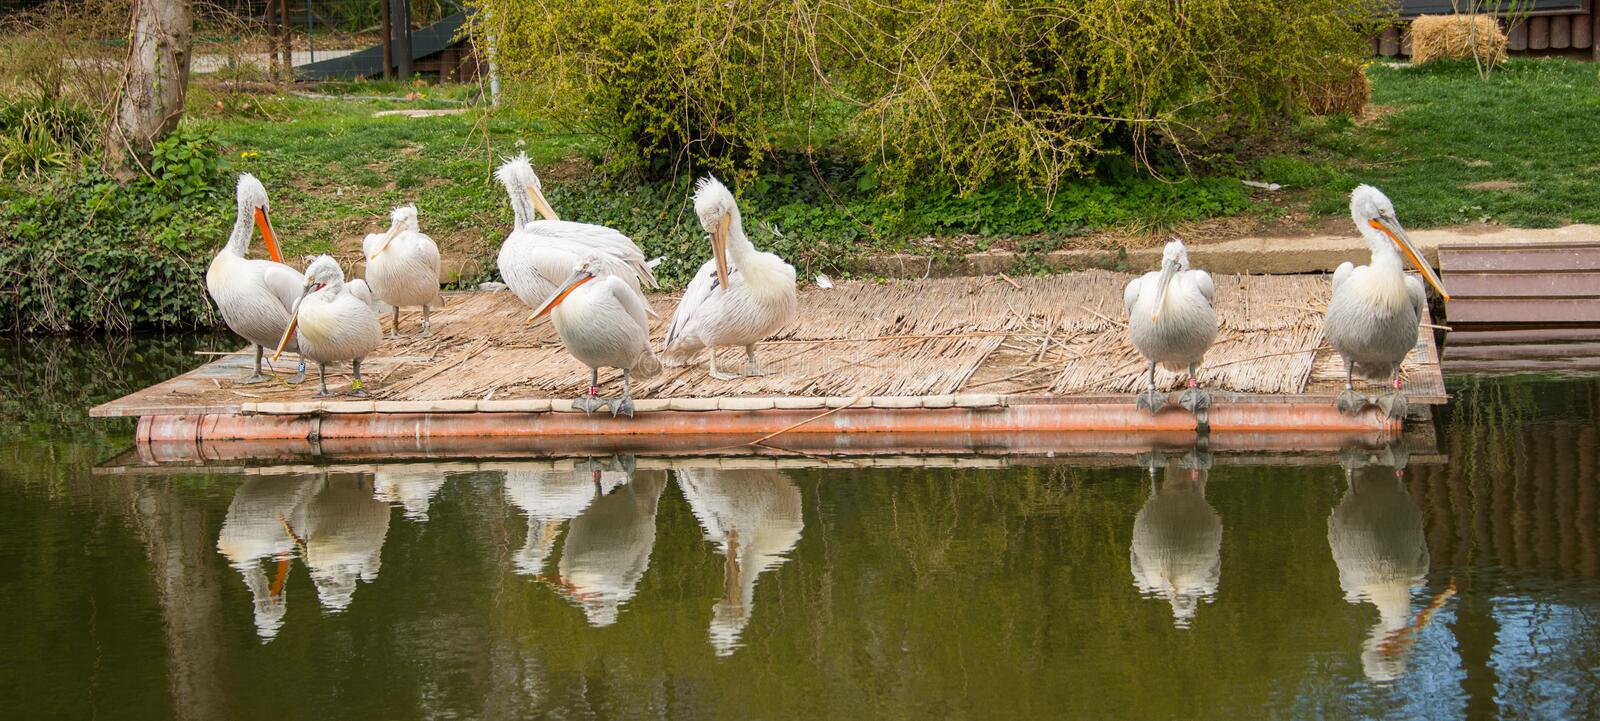 Pelecanus onocrotalus / Great white pelican in a group on a platform on a lake royalty free stock images